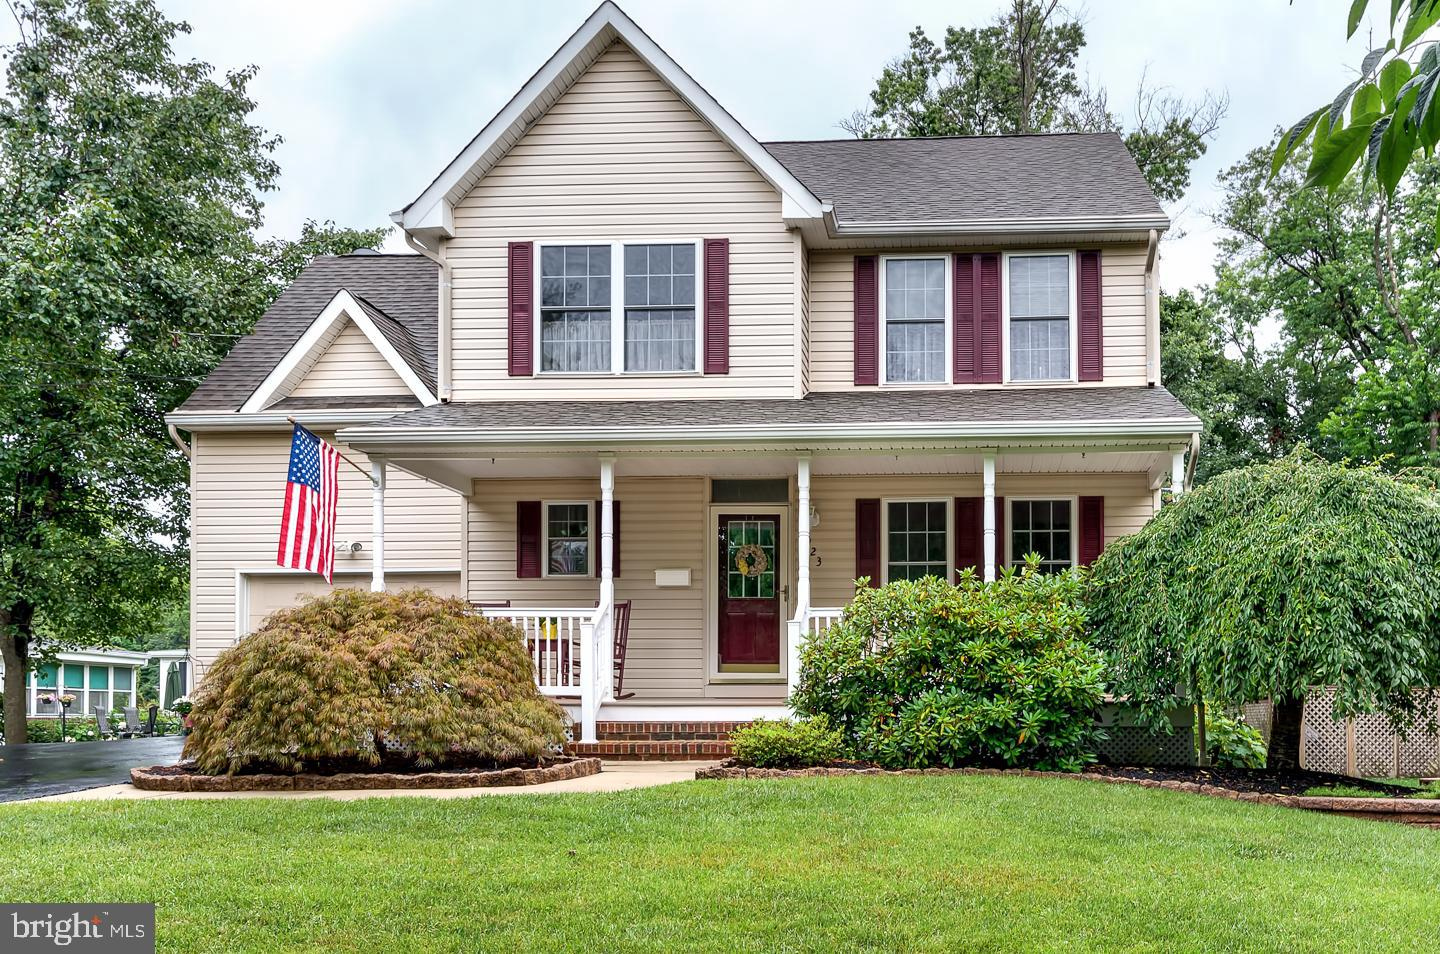 923 LINCOLN AVENUE, PALMYRA, NJ 08065